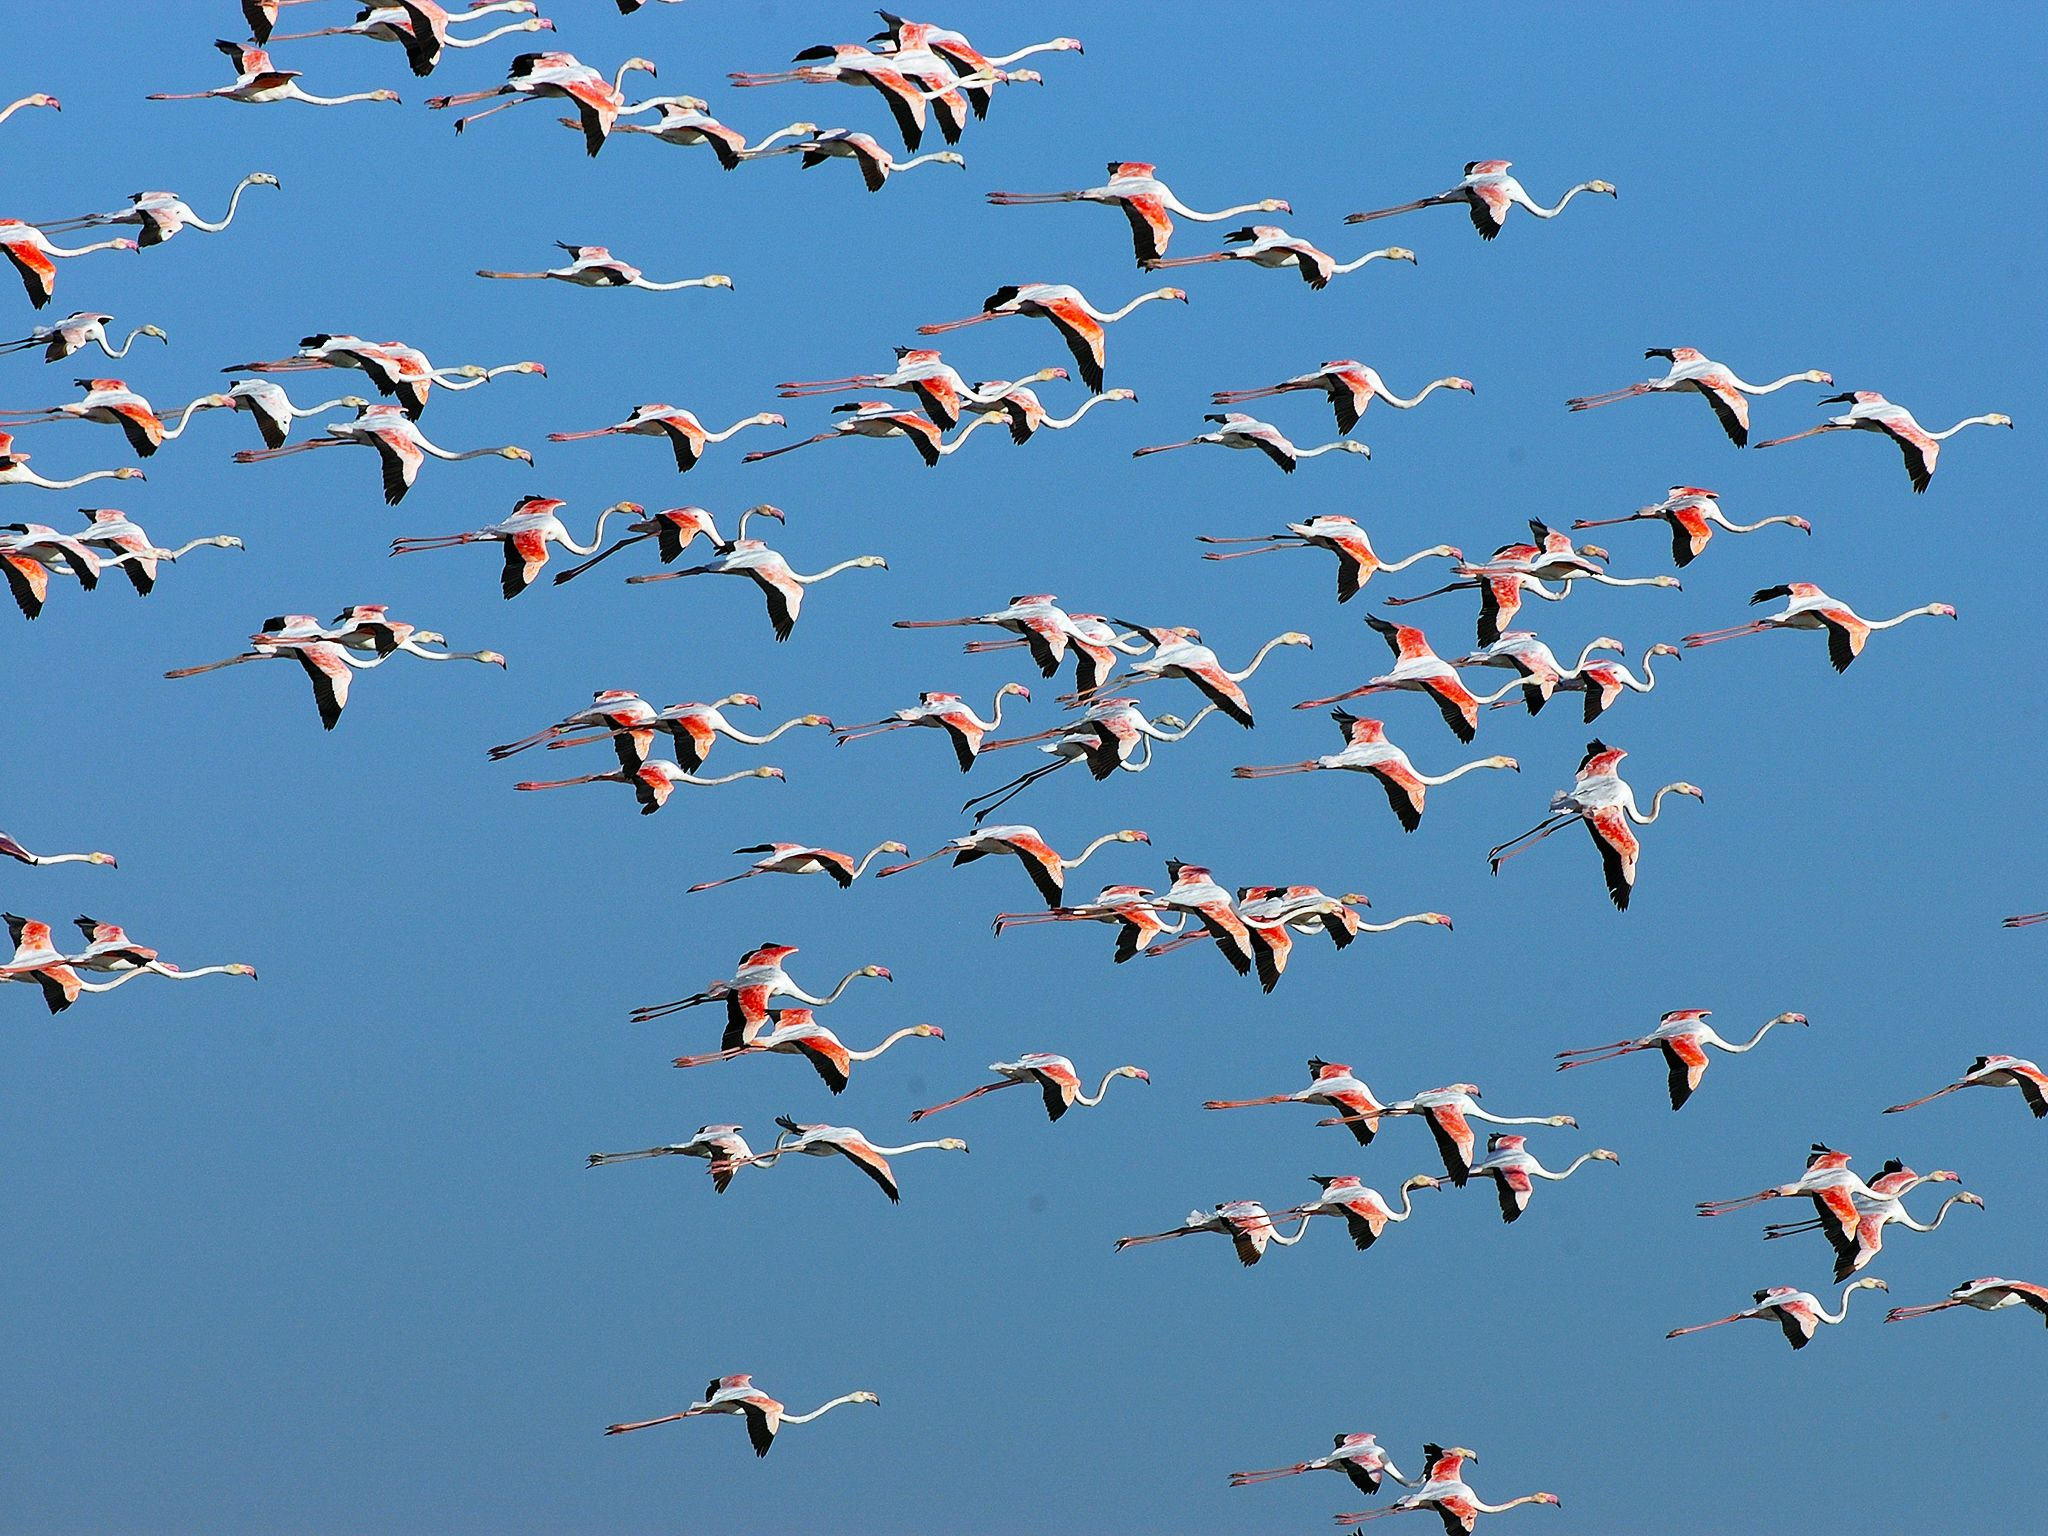 Spain: A group of vibrantly coloured flamingos takes flight in the Doñana region. These nomads c... [Photo of the day - دسامبر 2014]